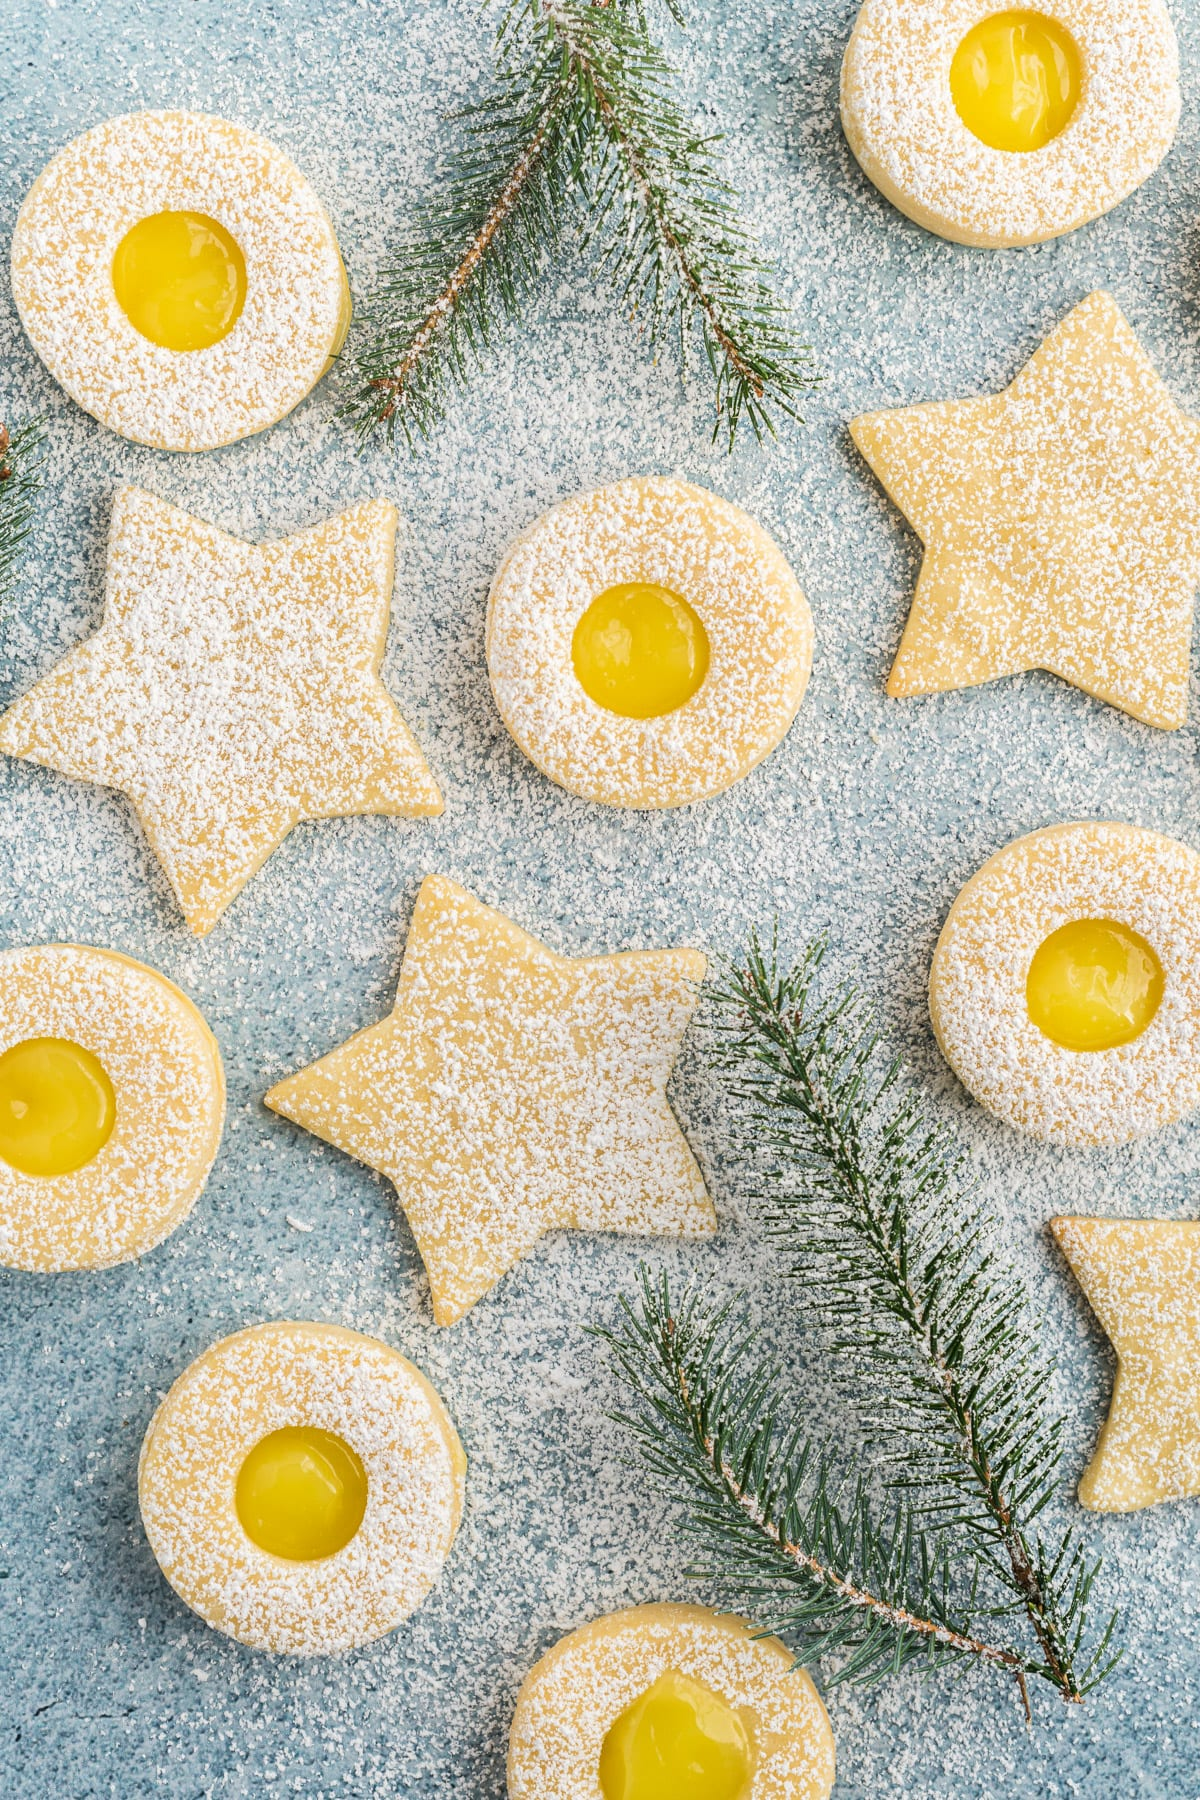 Shortbread cookies cut like stars and shortbread filled with lemon curd.